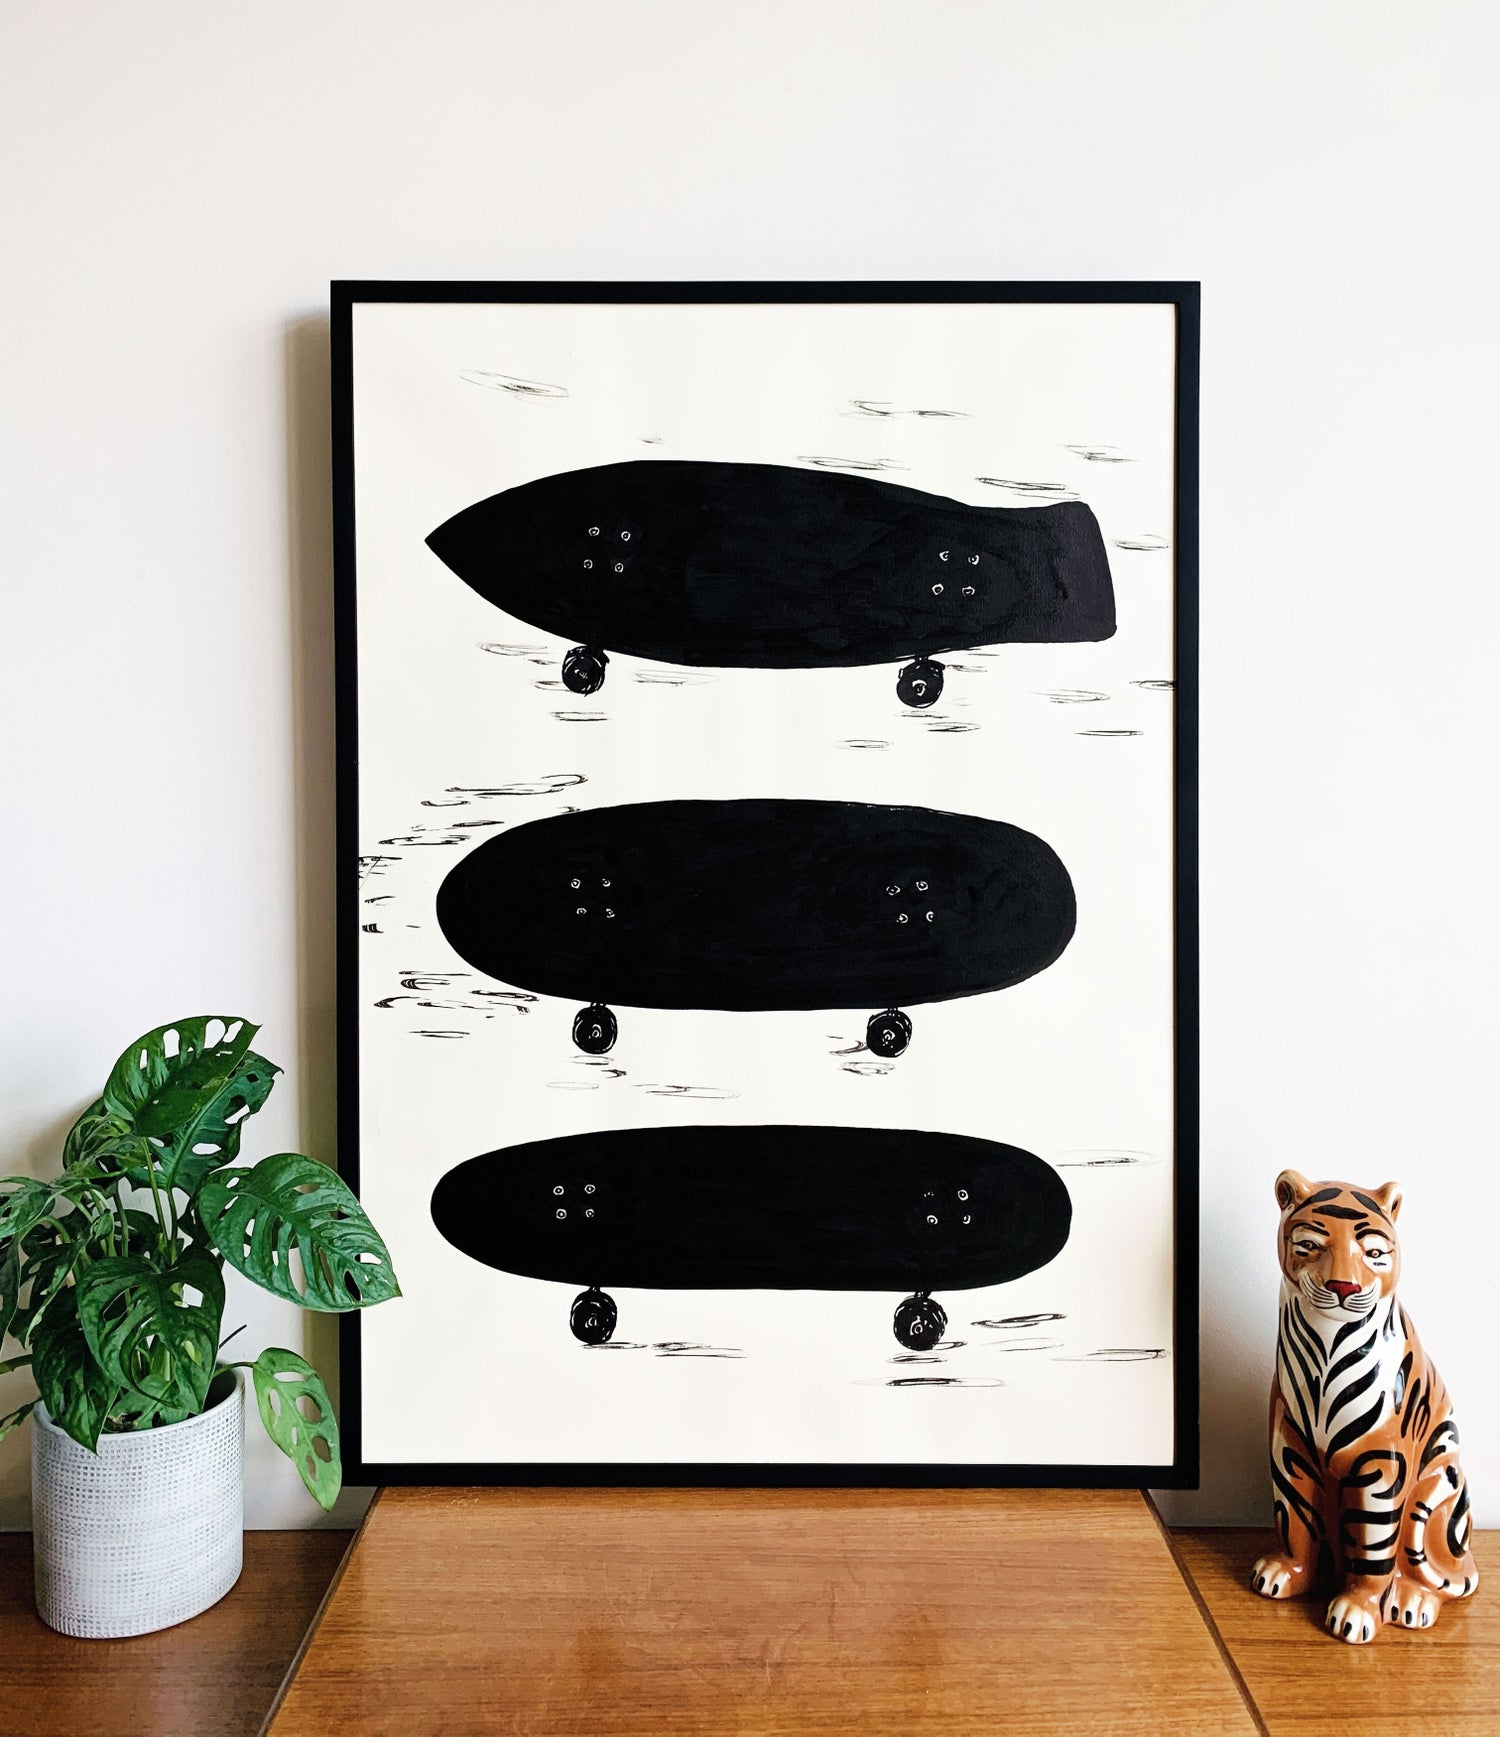 Skateboard shapes #2 (A1) original painting